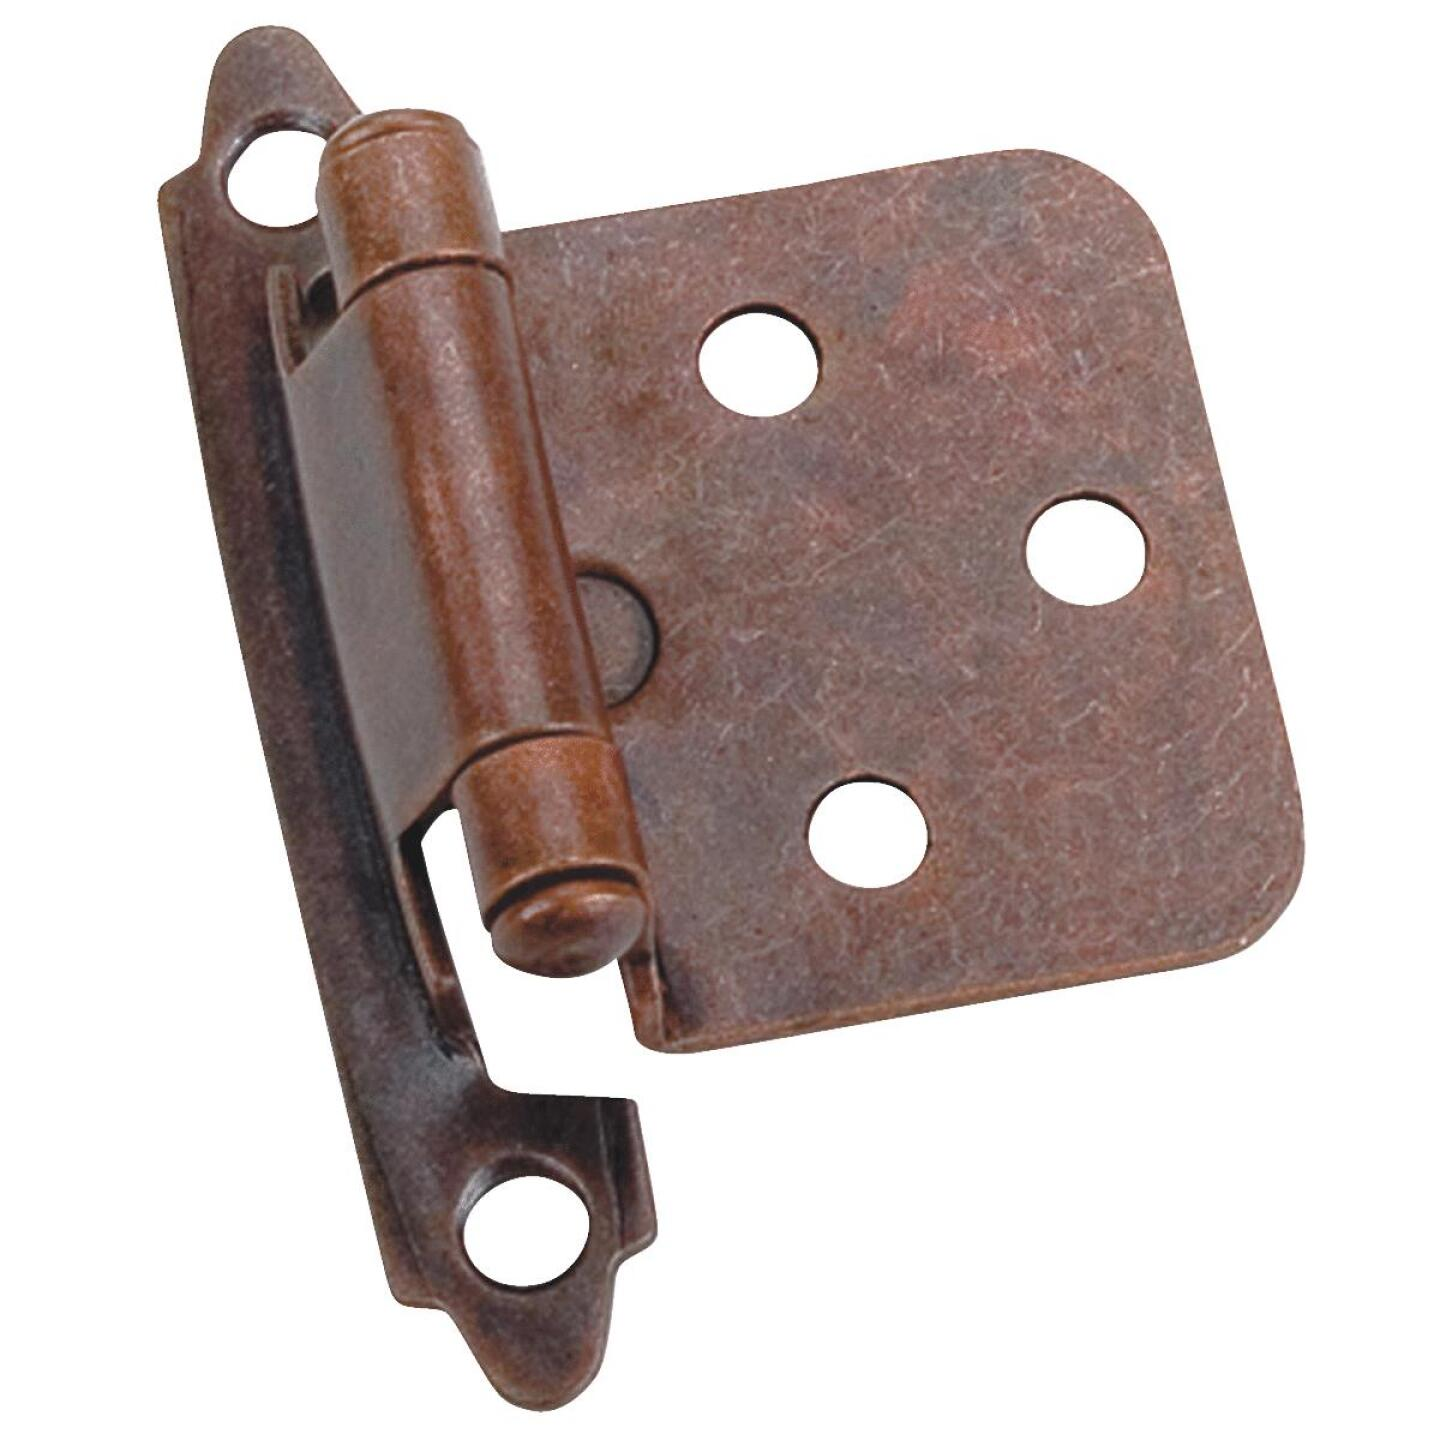 Laurey Venetian Bronze Self-Closing Overlay Hinge with Zinc Screws (2-Pack) Image 1